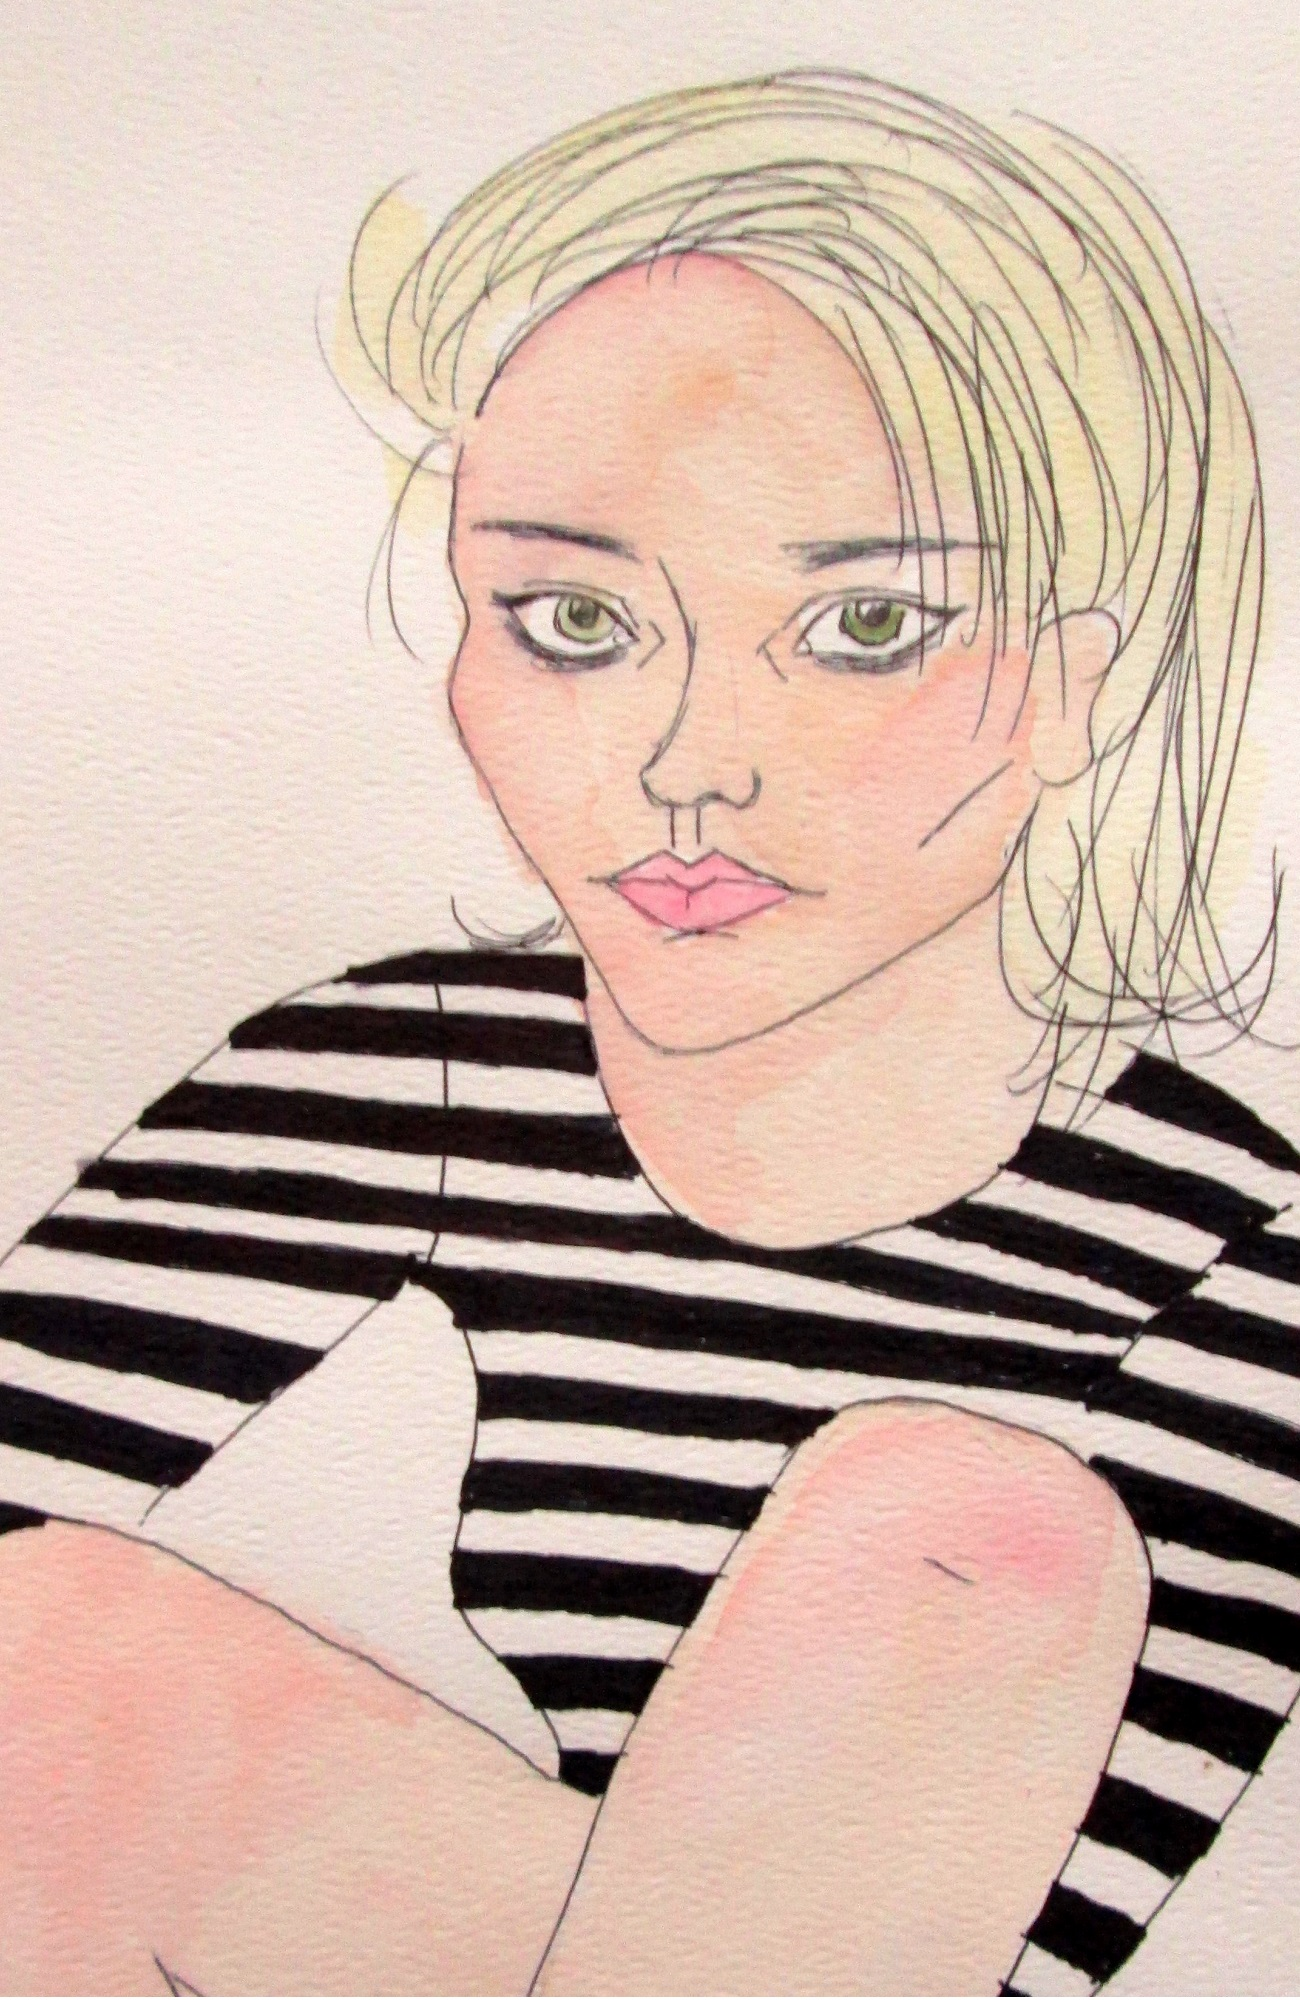 Sky Ferreira watercolor 2 on Storenvy